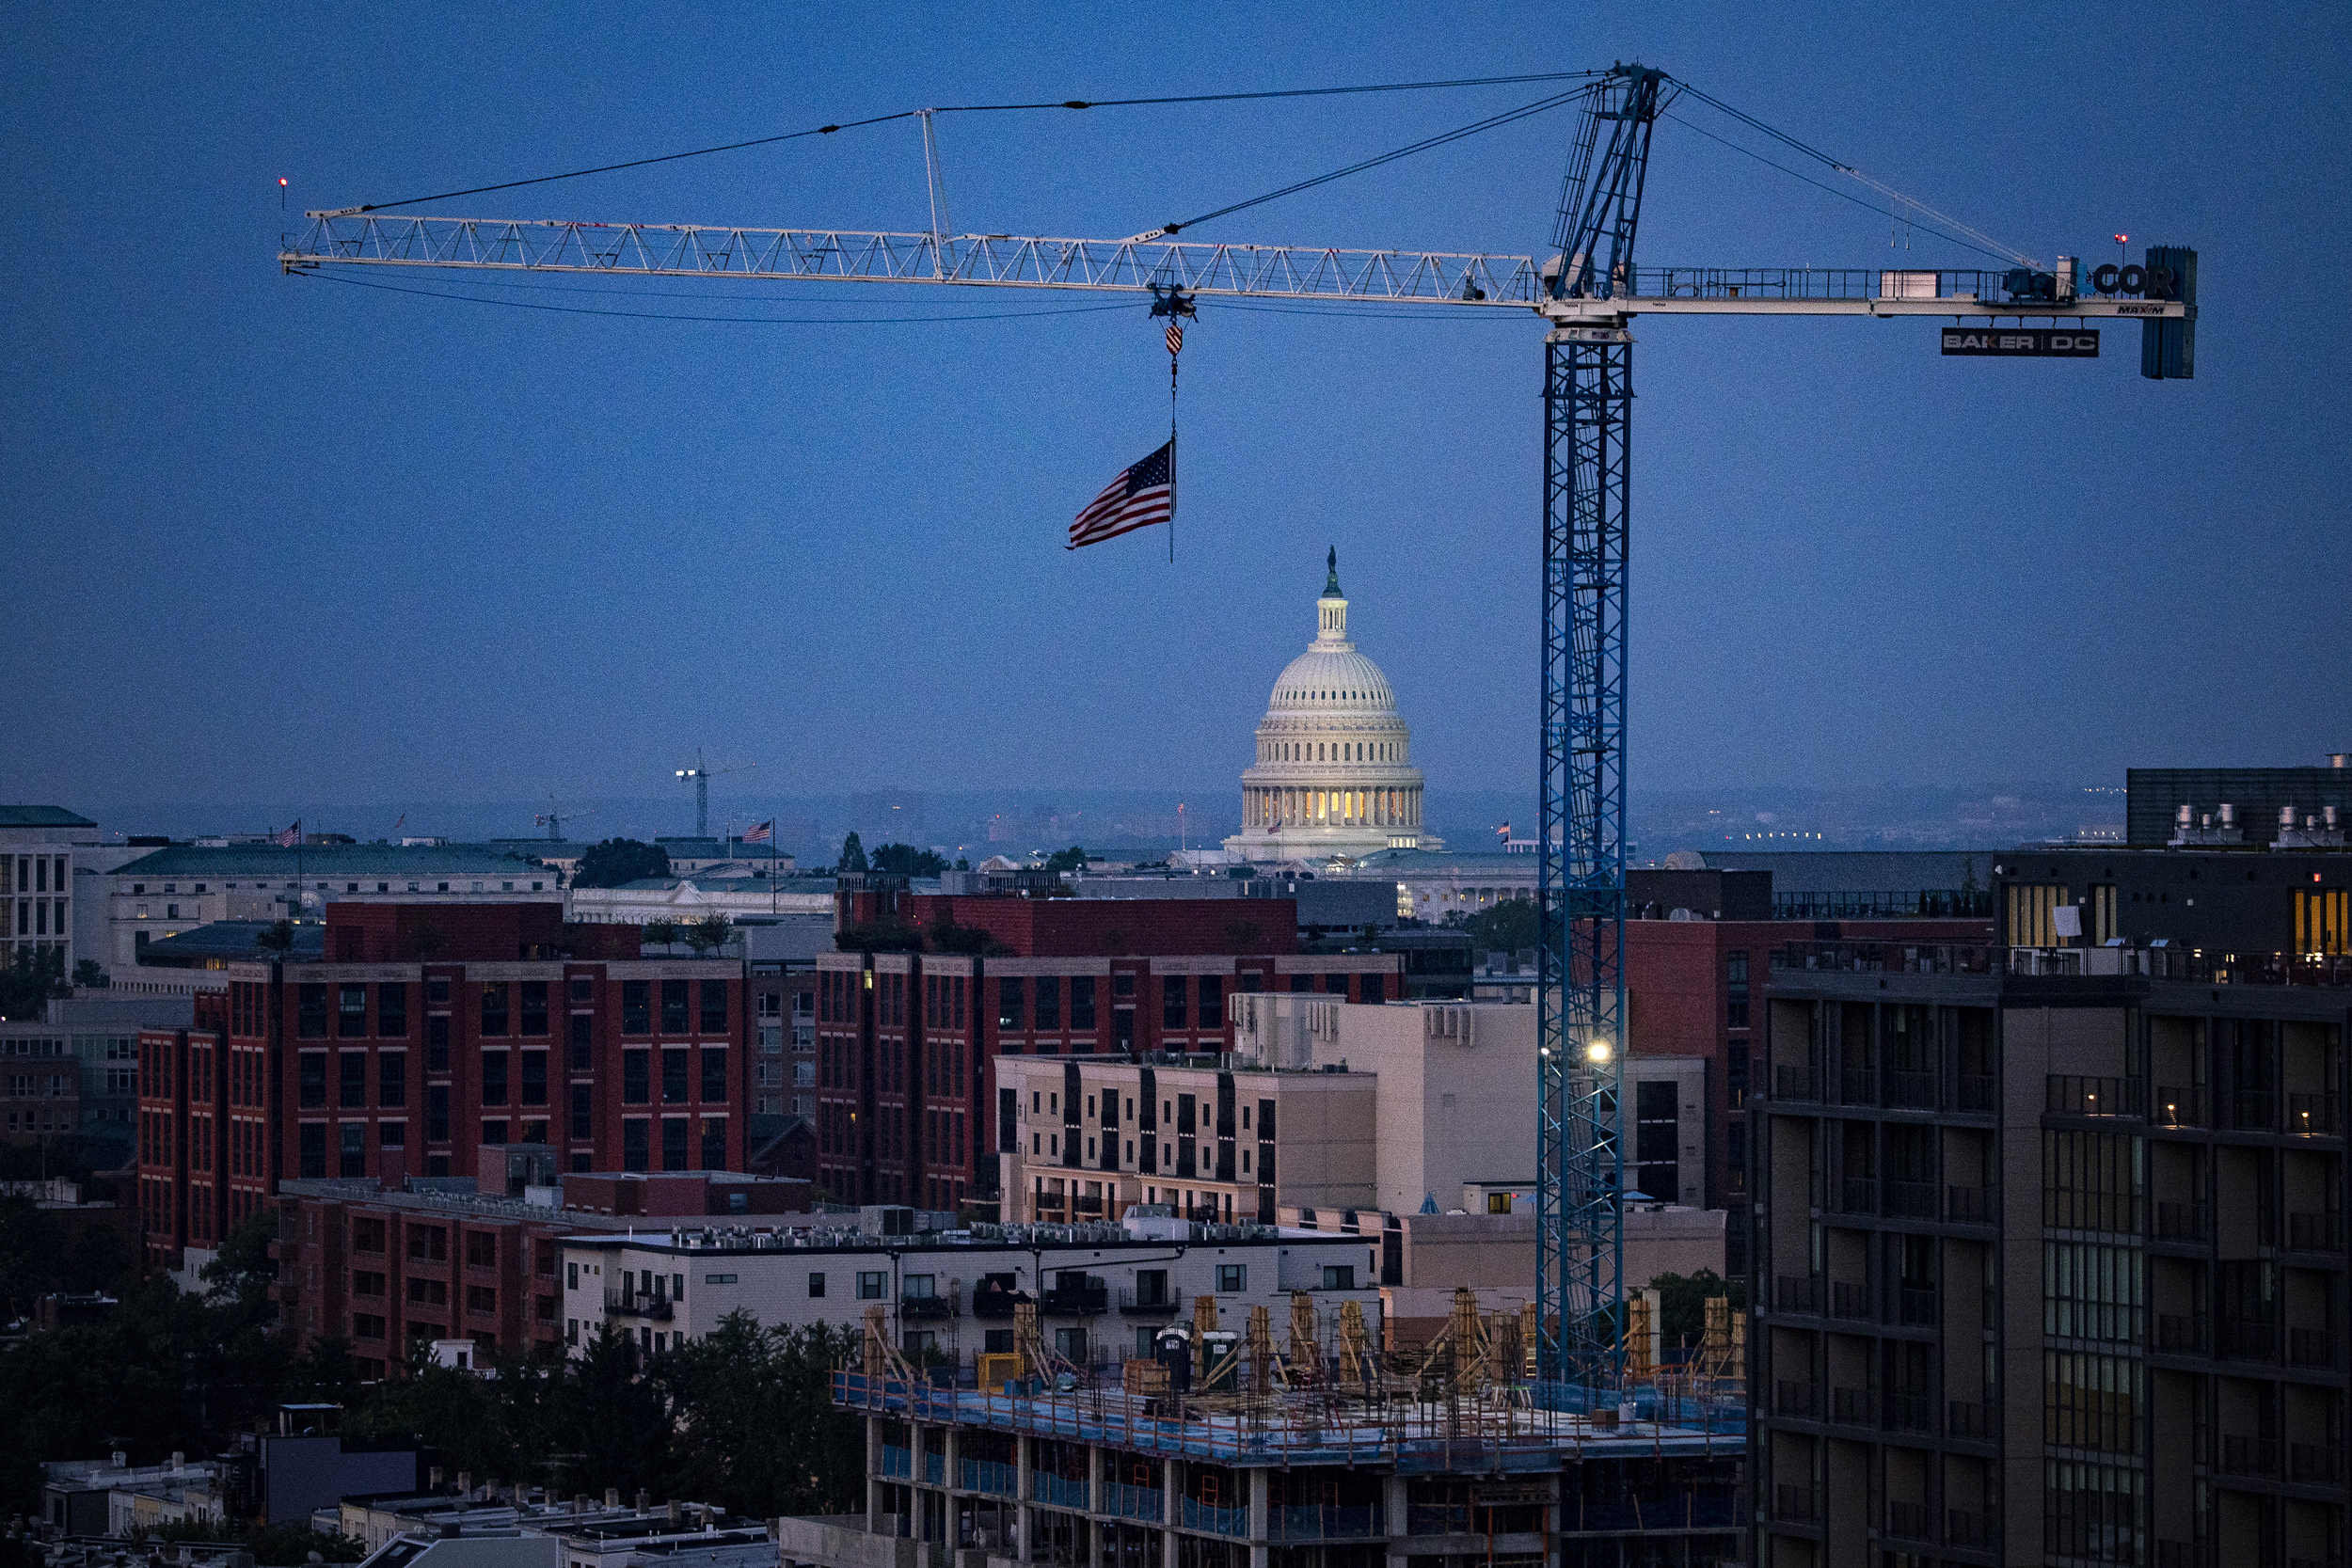 In defiance of Trump, more than one-third of Senate GOP backs infrastructure bill